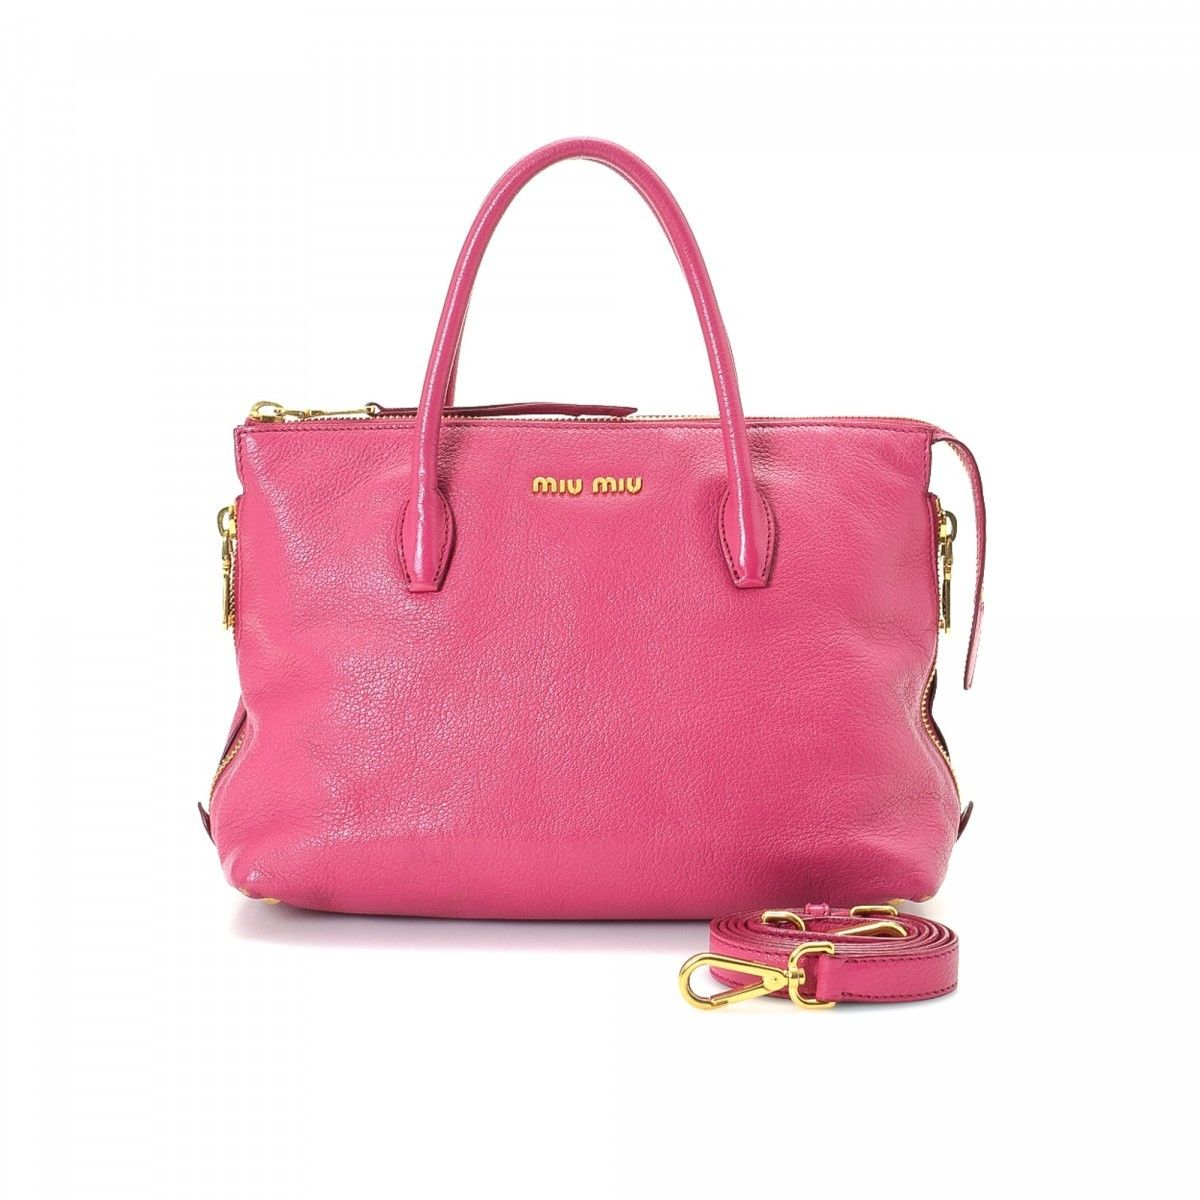 Miu Miu Pre-owned - Pink Leather Handbag jj4zswVlU